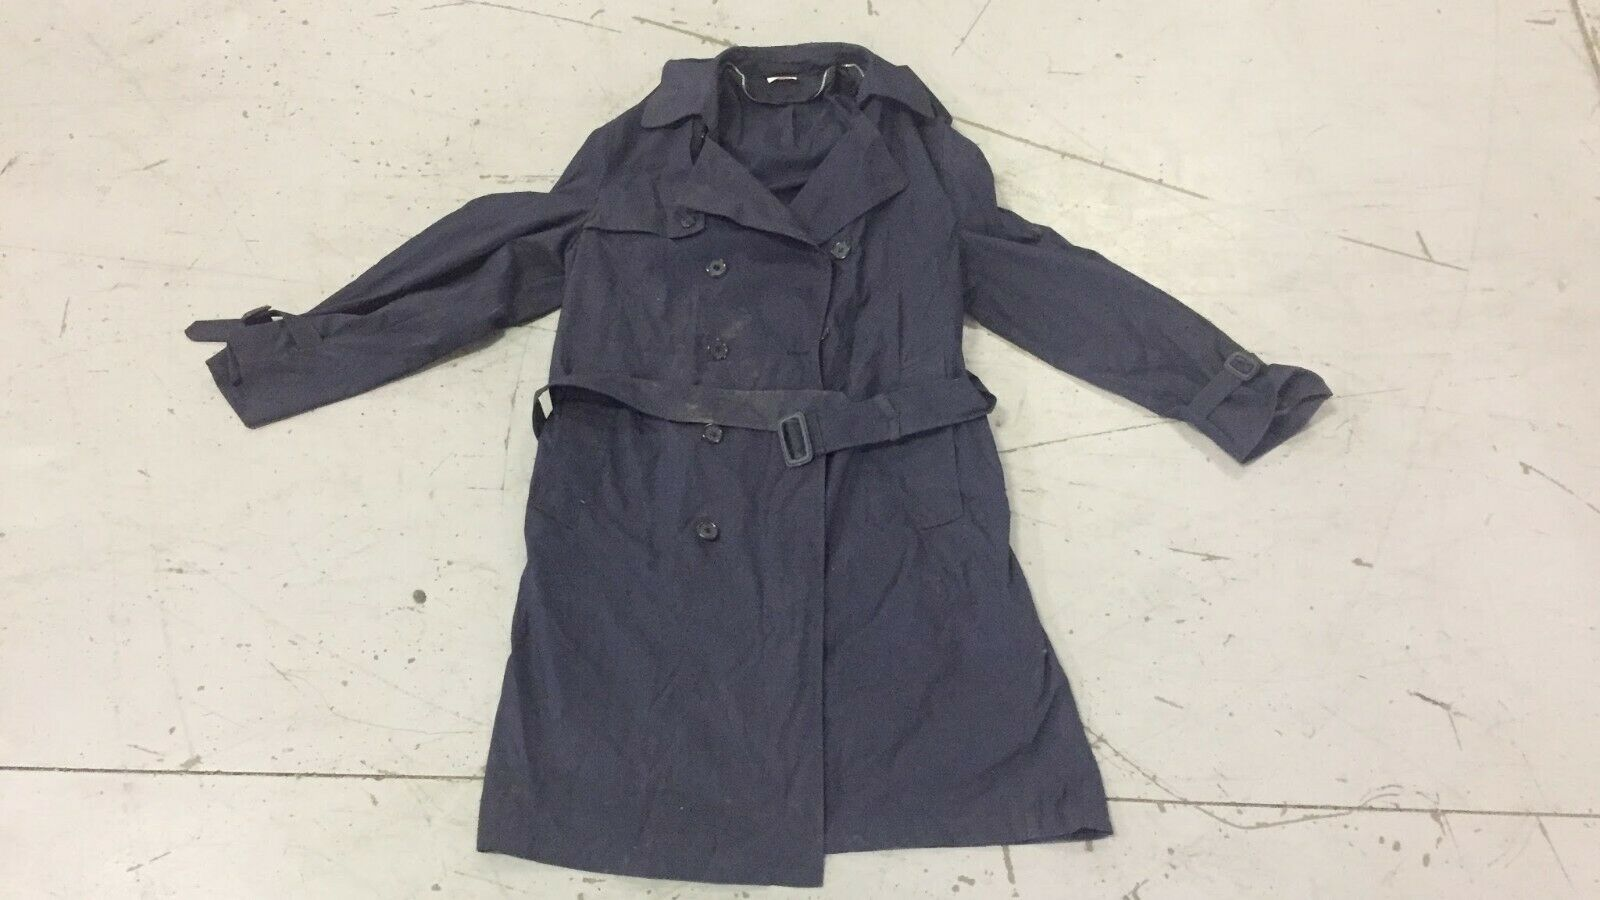 A-A-55110, Mens All Weather Coat Size 4ZR, Used